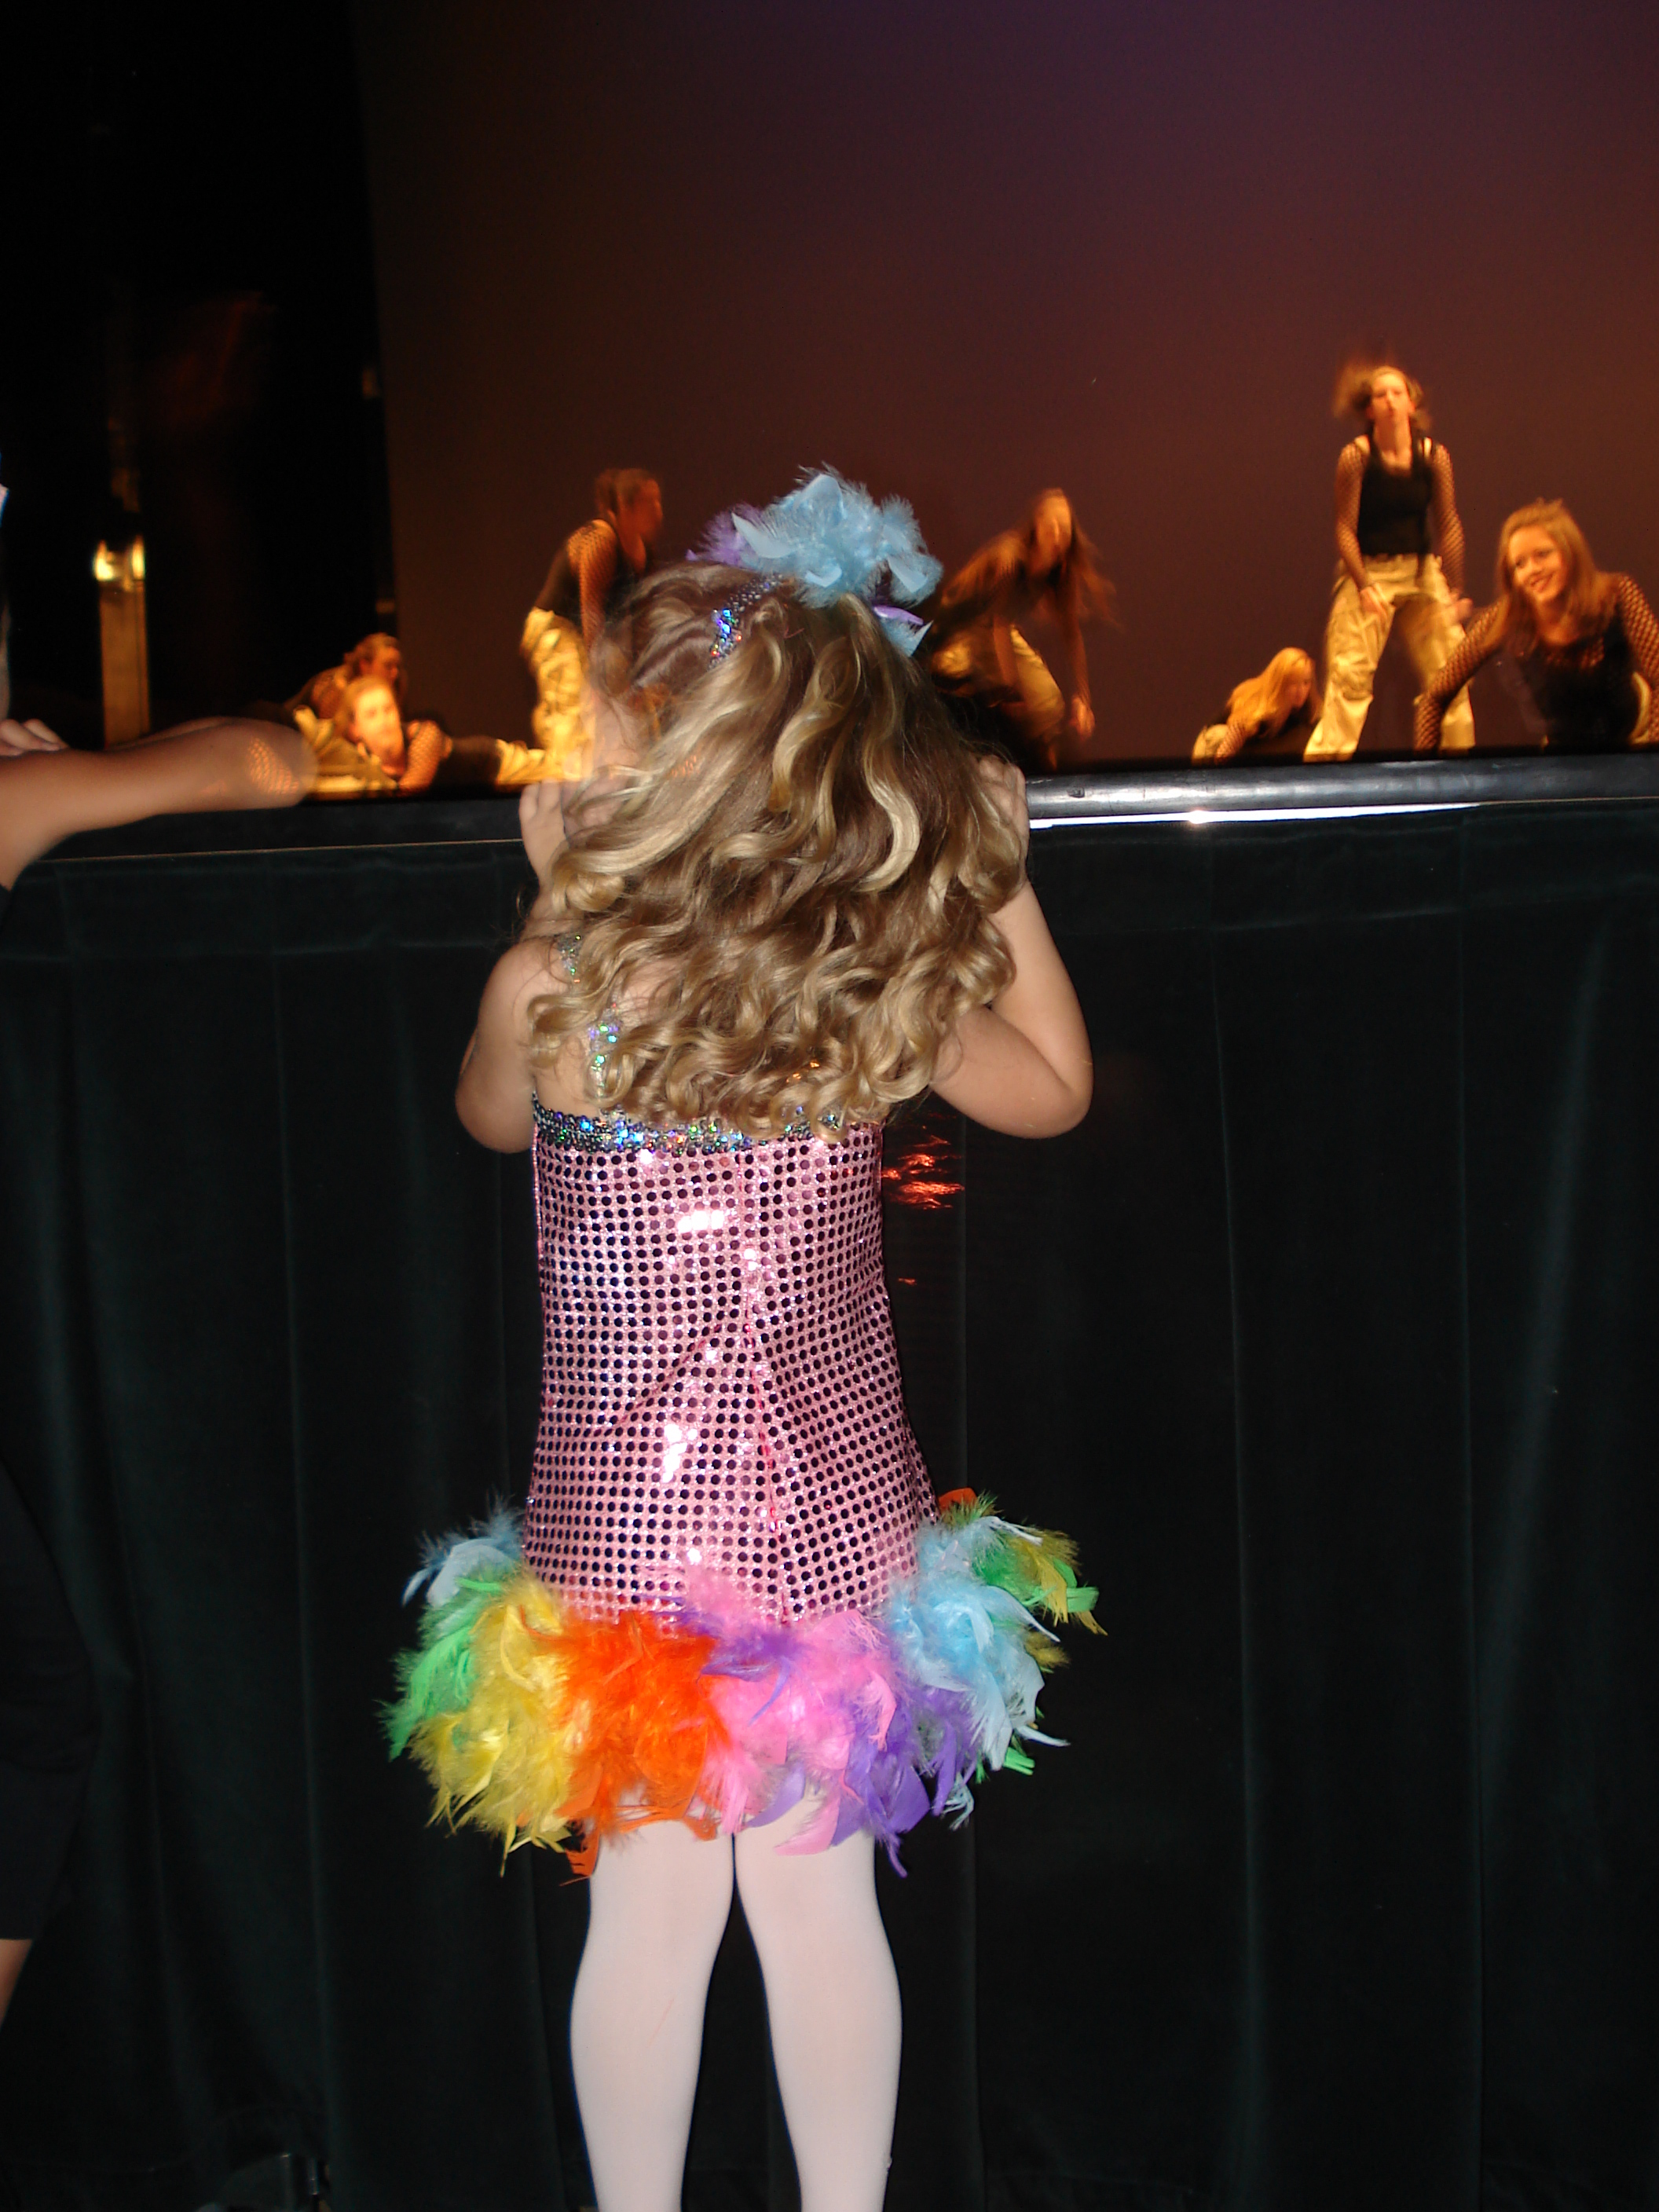 ASHTON AT HER FIRST SHOWCASE WATCHING HOW THE BIG KIDS DO IT. KNEW I WAS IN TROUBLE!